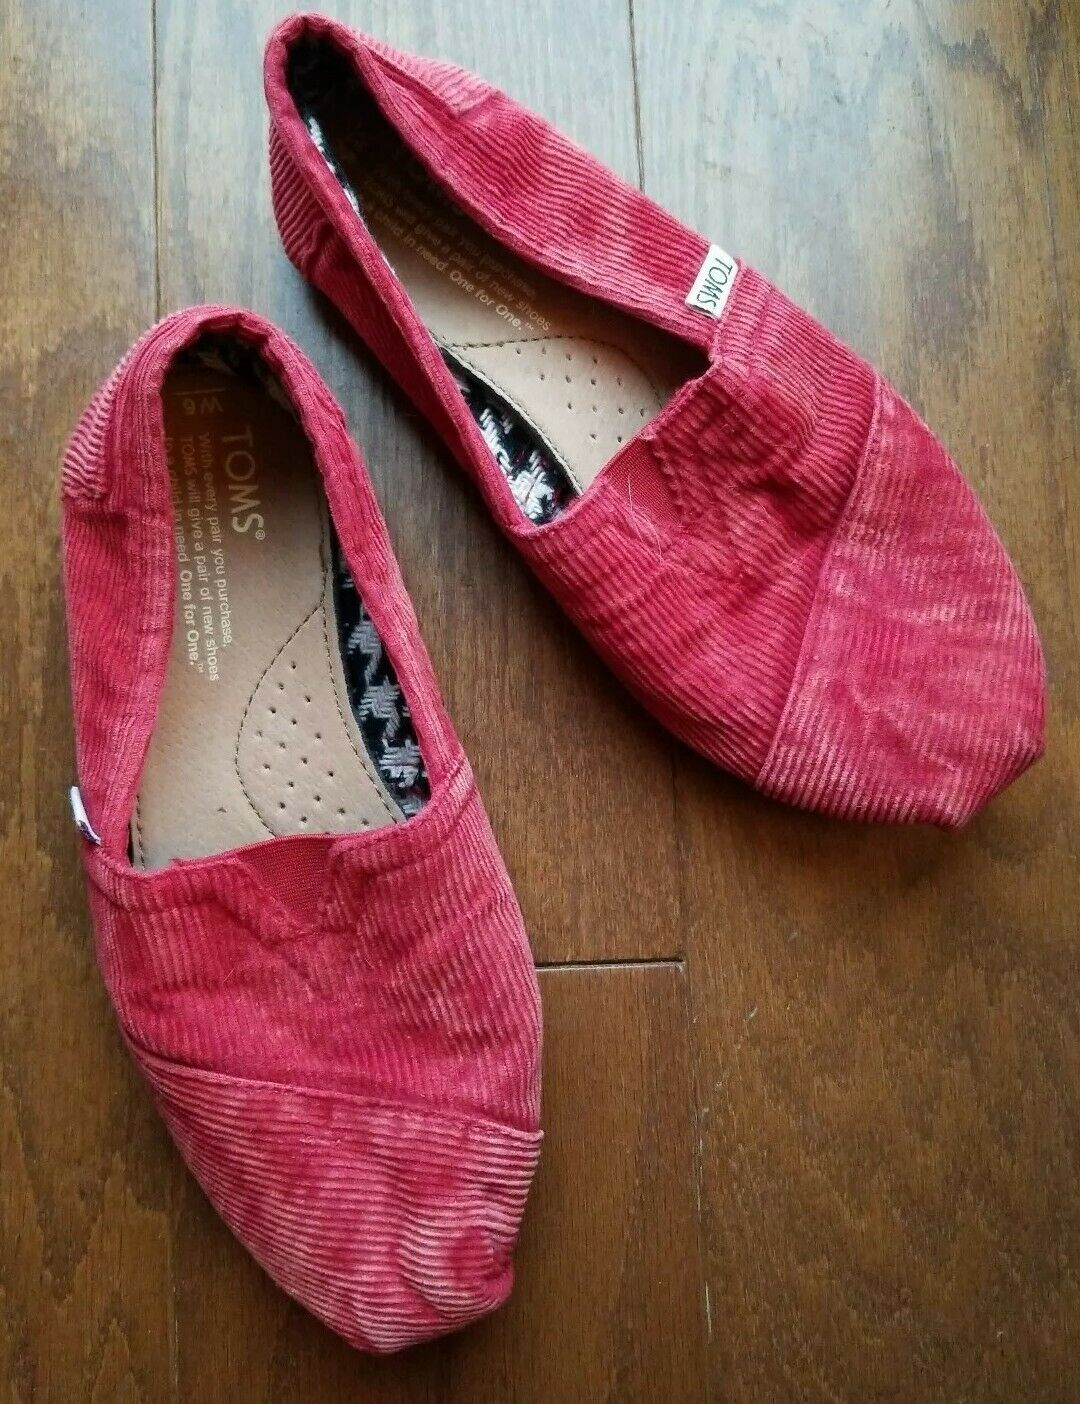 TOMS Red Corduroy Slip On Casual Loafer Classic Textured Shoes Women's Size 6